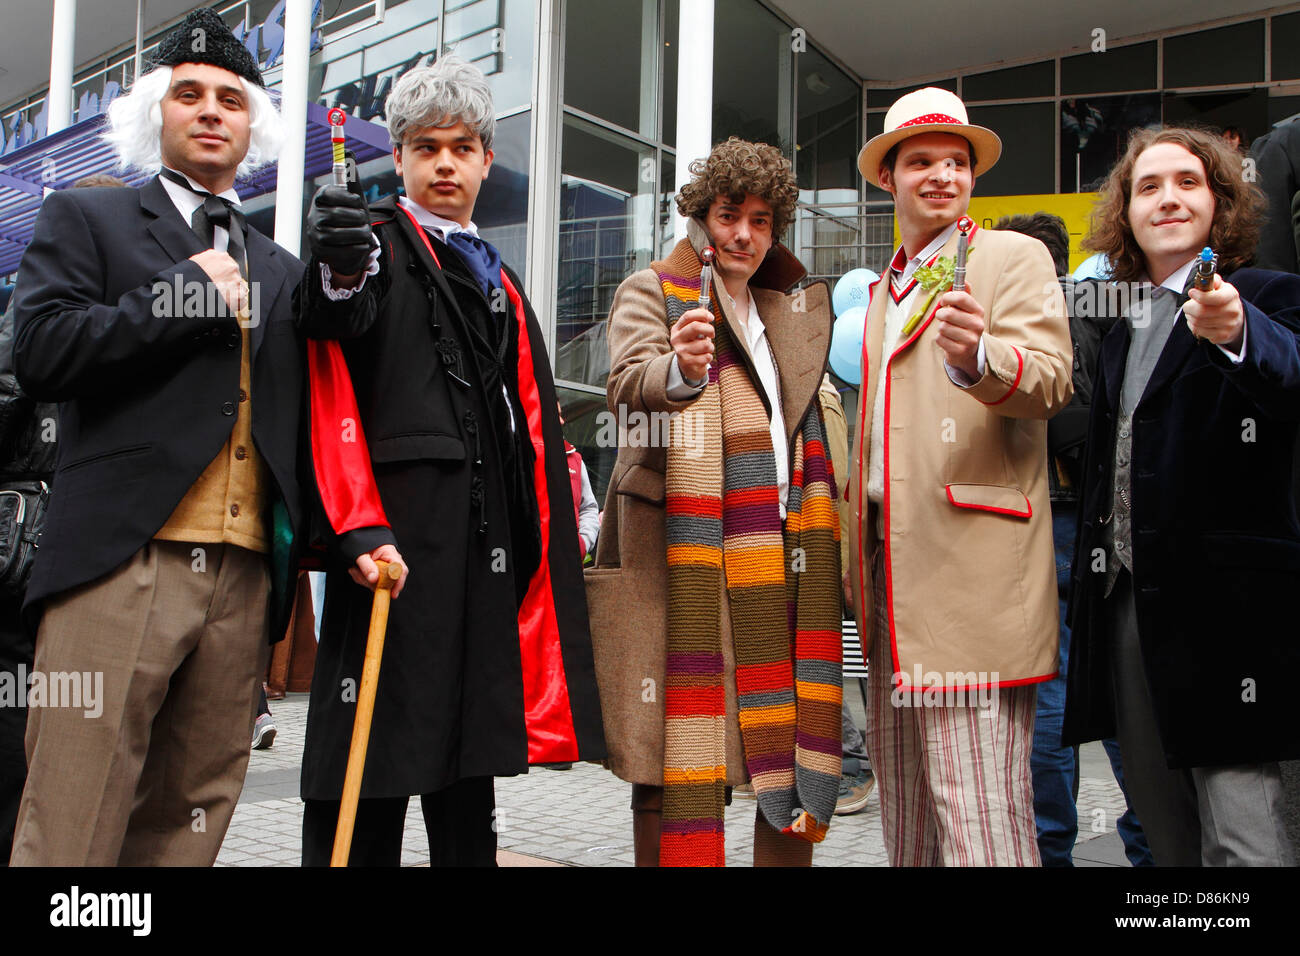 Fans of the British science fiction television series Dr Who dressed as various incarnations of the character - Stock Image